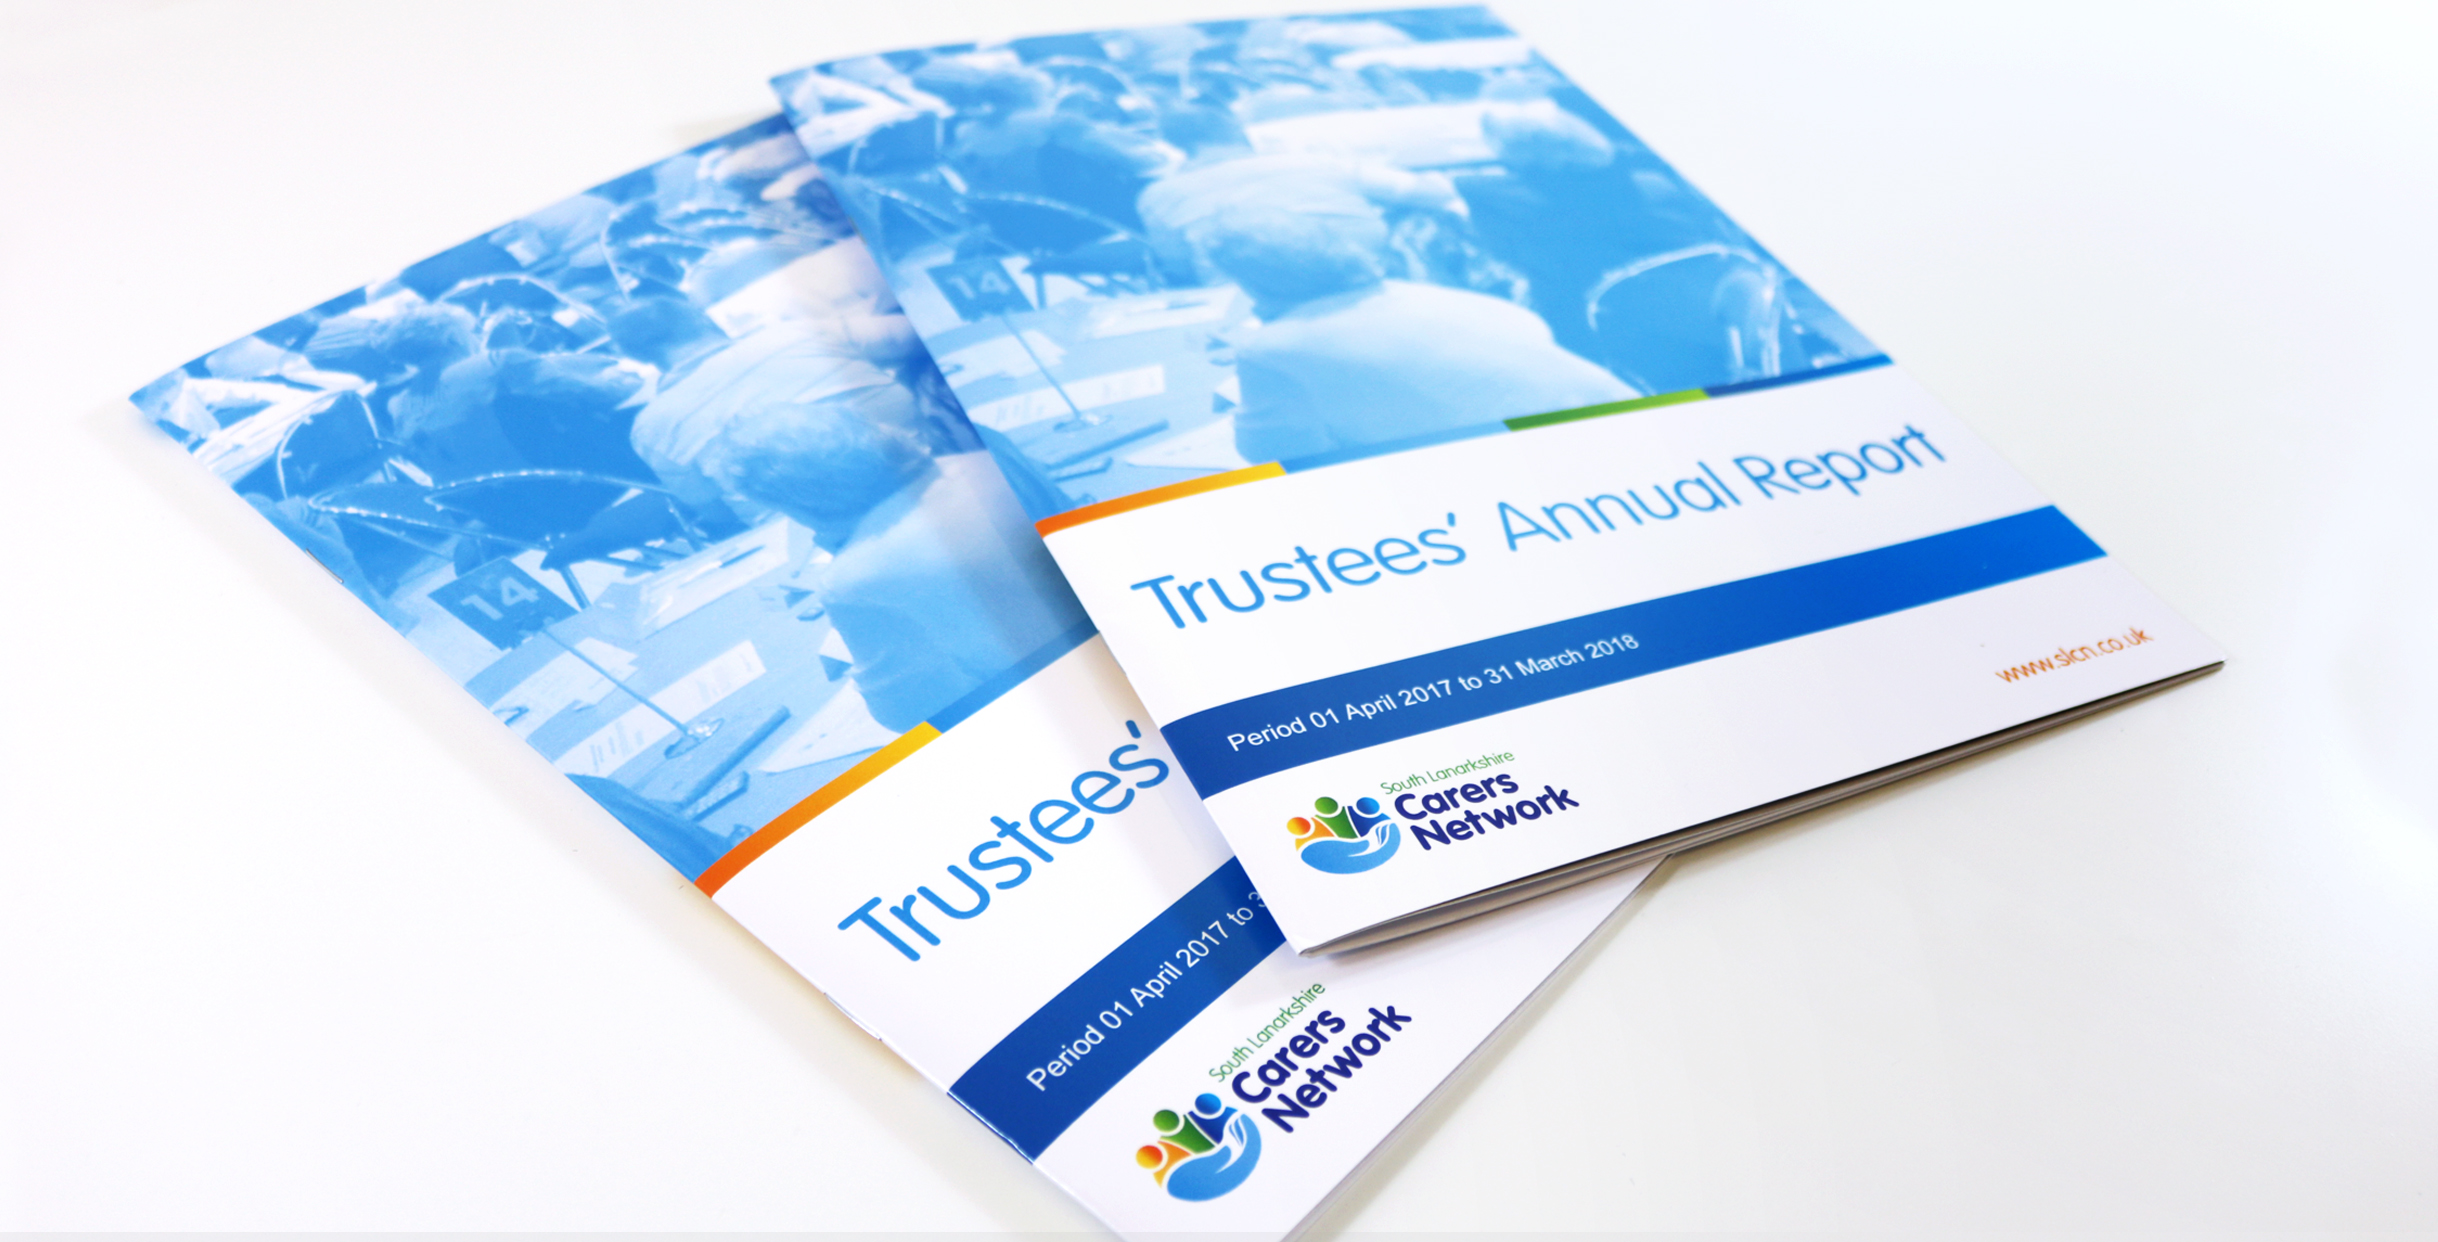 Annual report design for Hamilton based charity South Lanarkshire Carers Network.